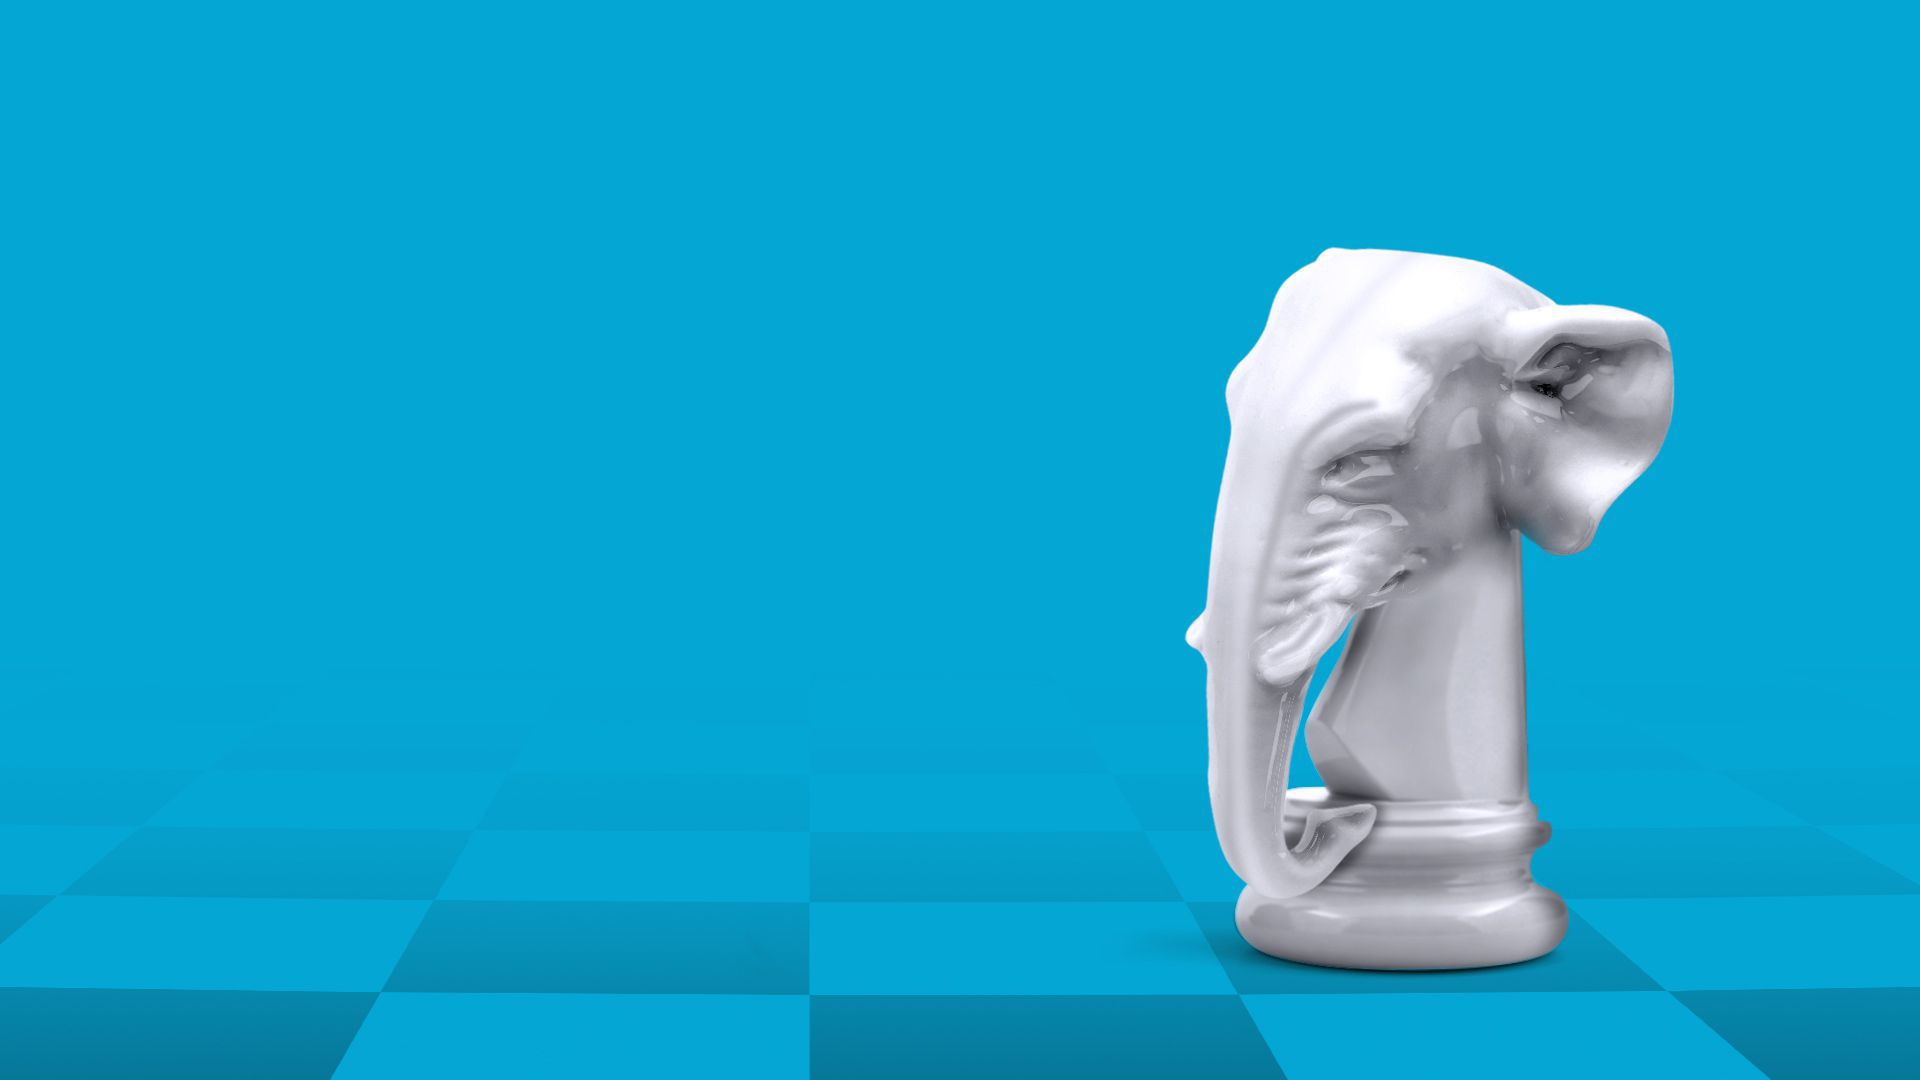 Illustration of an elephant as a chess piece.